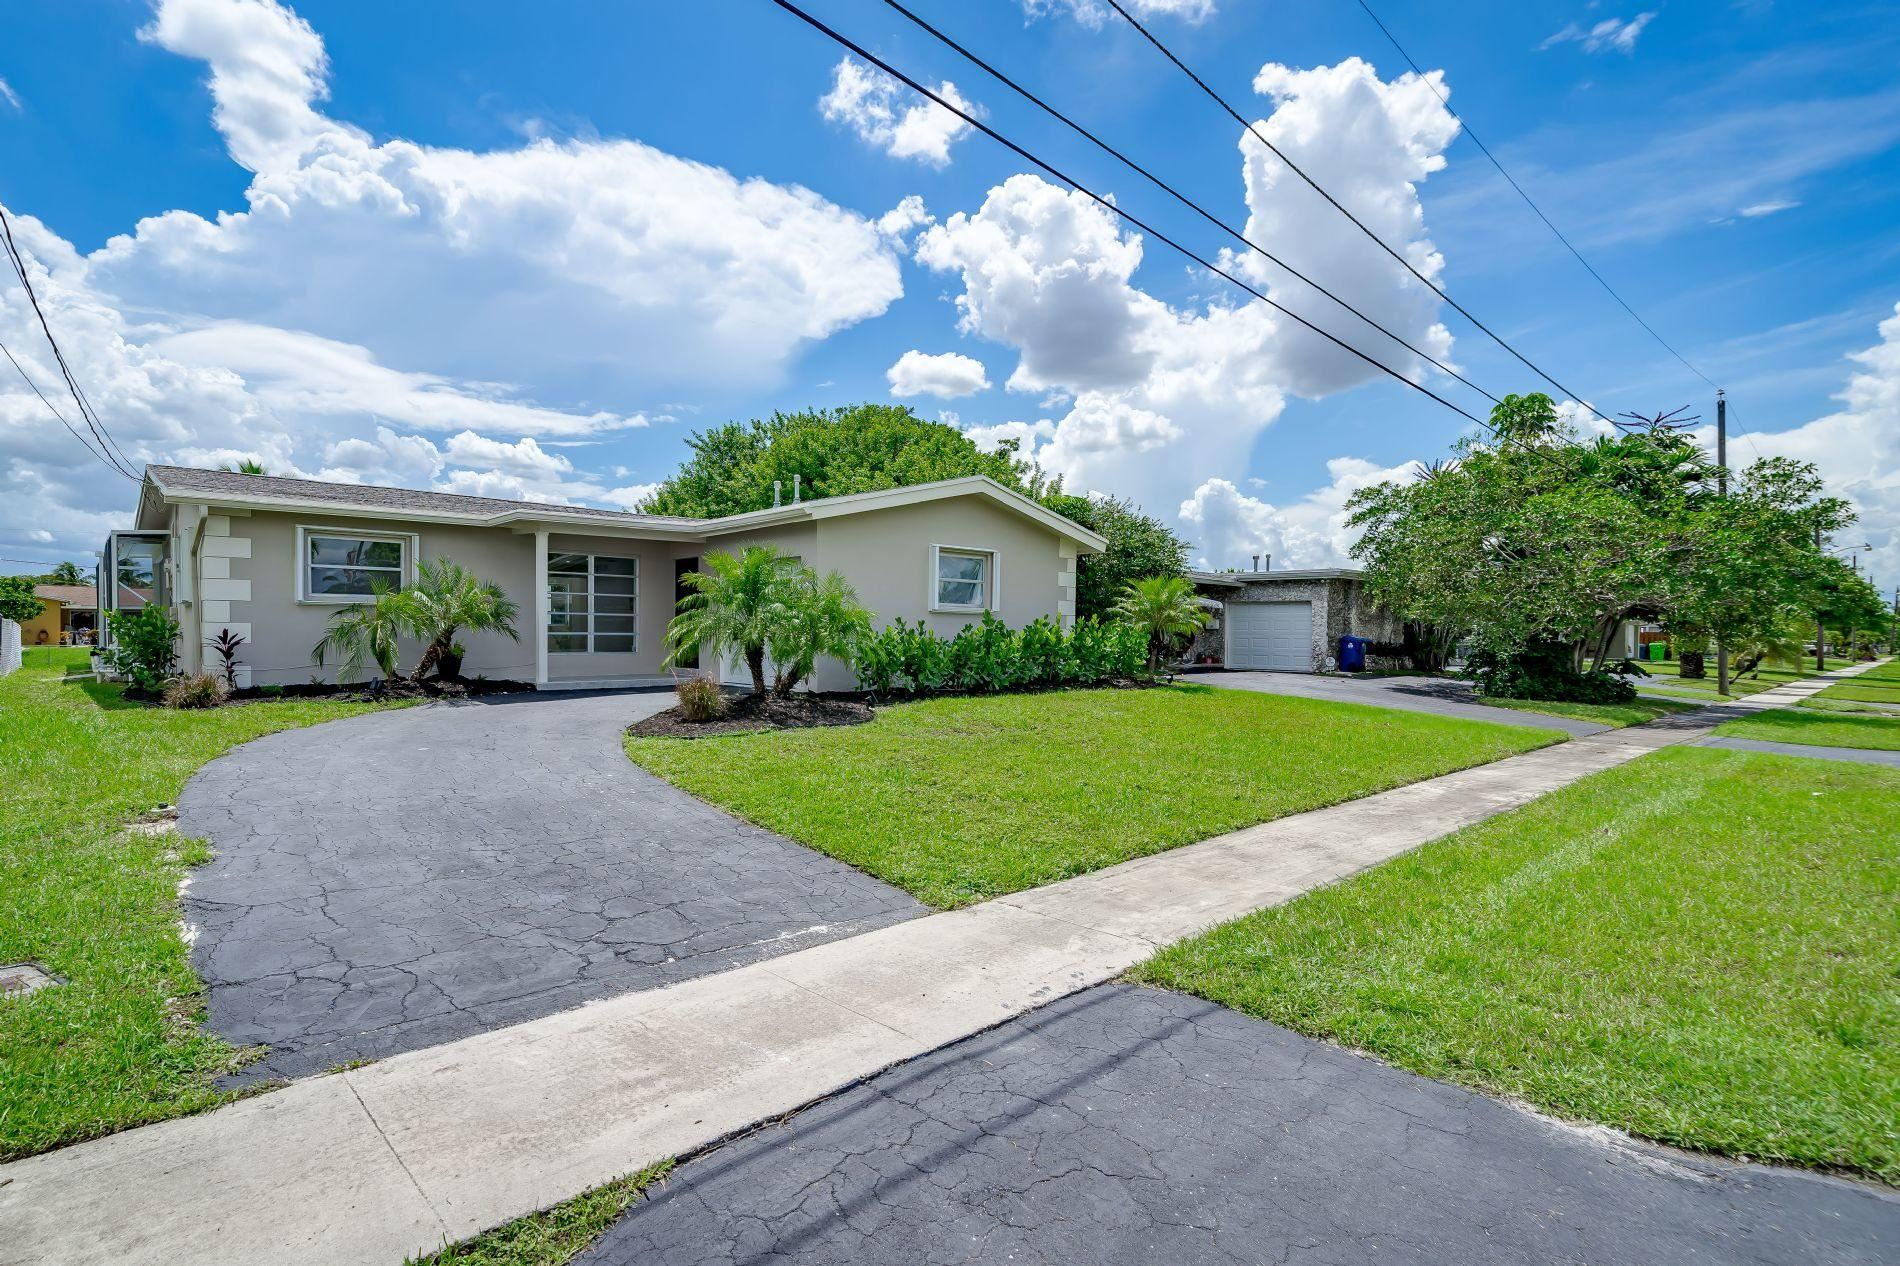 Photo of 8570 NW 24th Place, Sunrise, FL 33322 (MLS # RX-10654213)